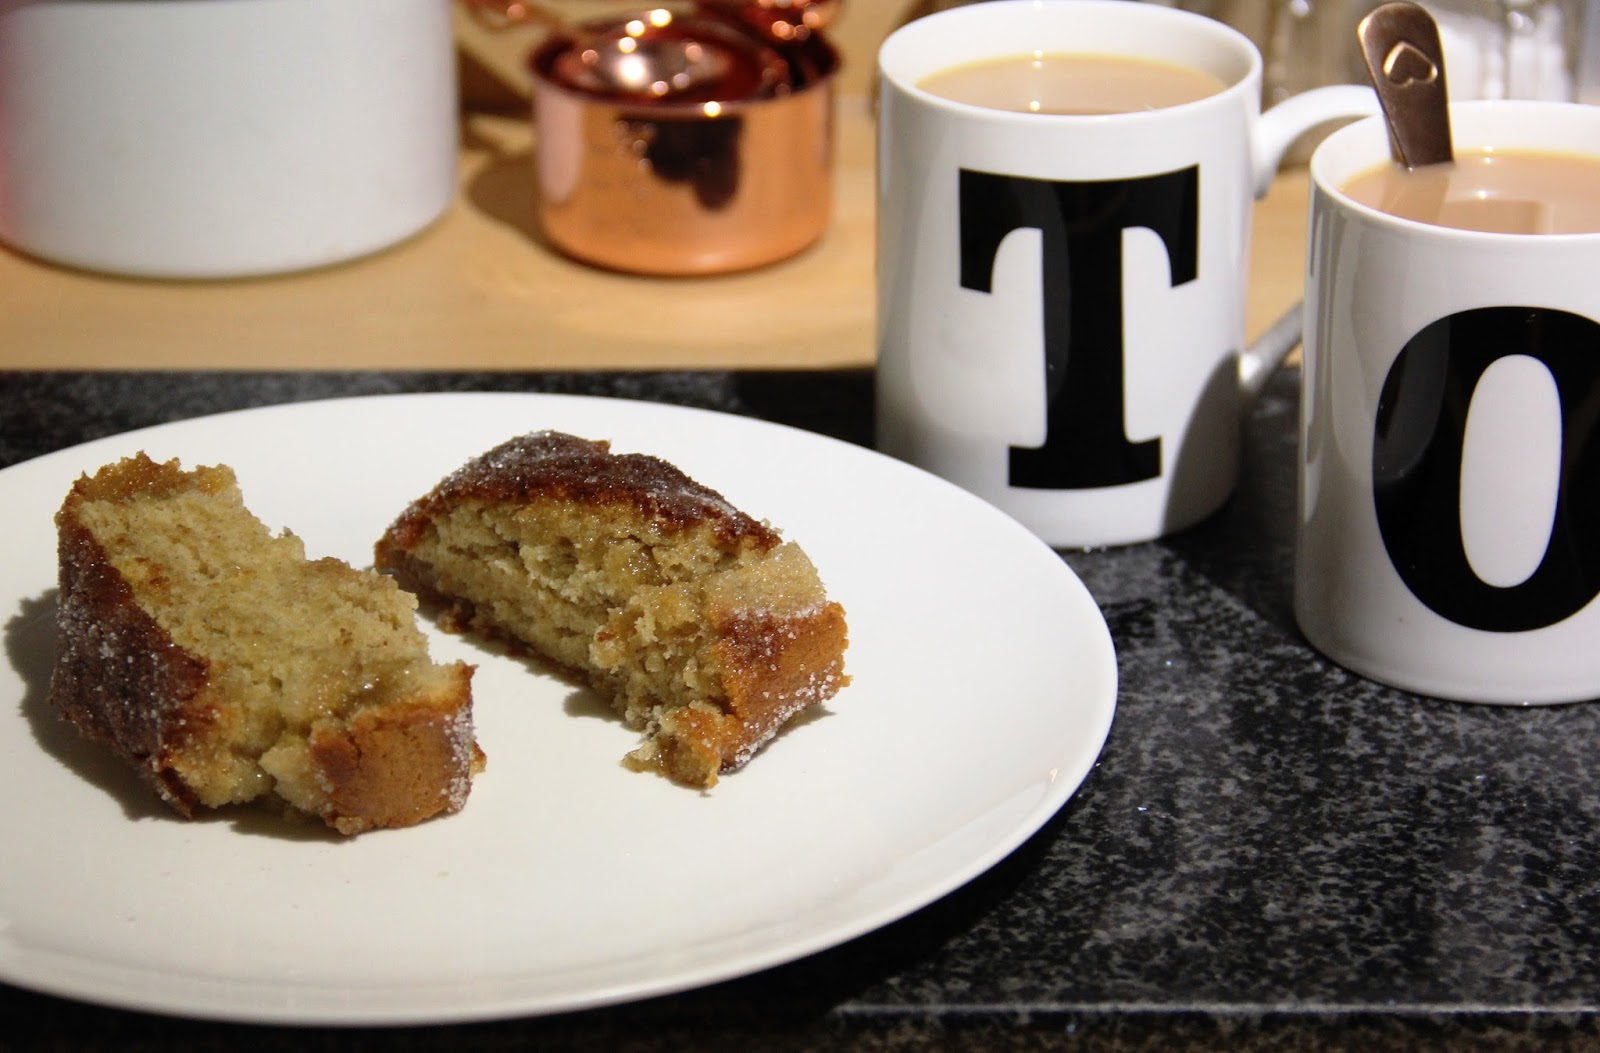 It's best whilst it's still warm! (and yes, we do have mugs with our initials on)